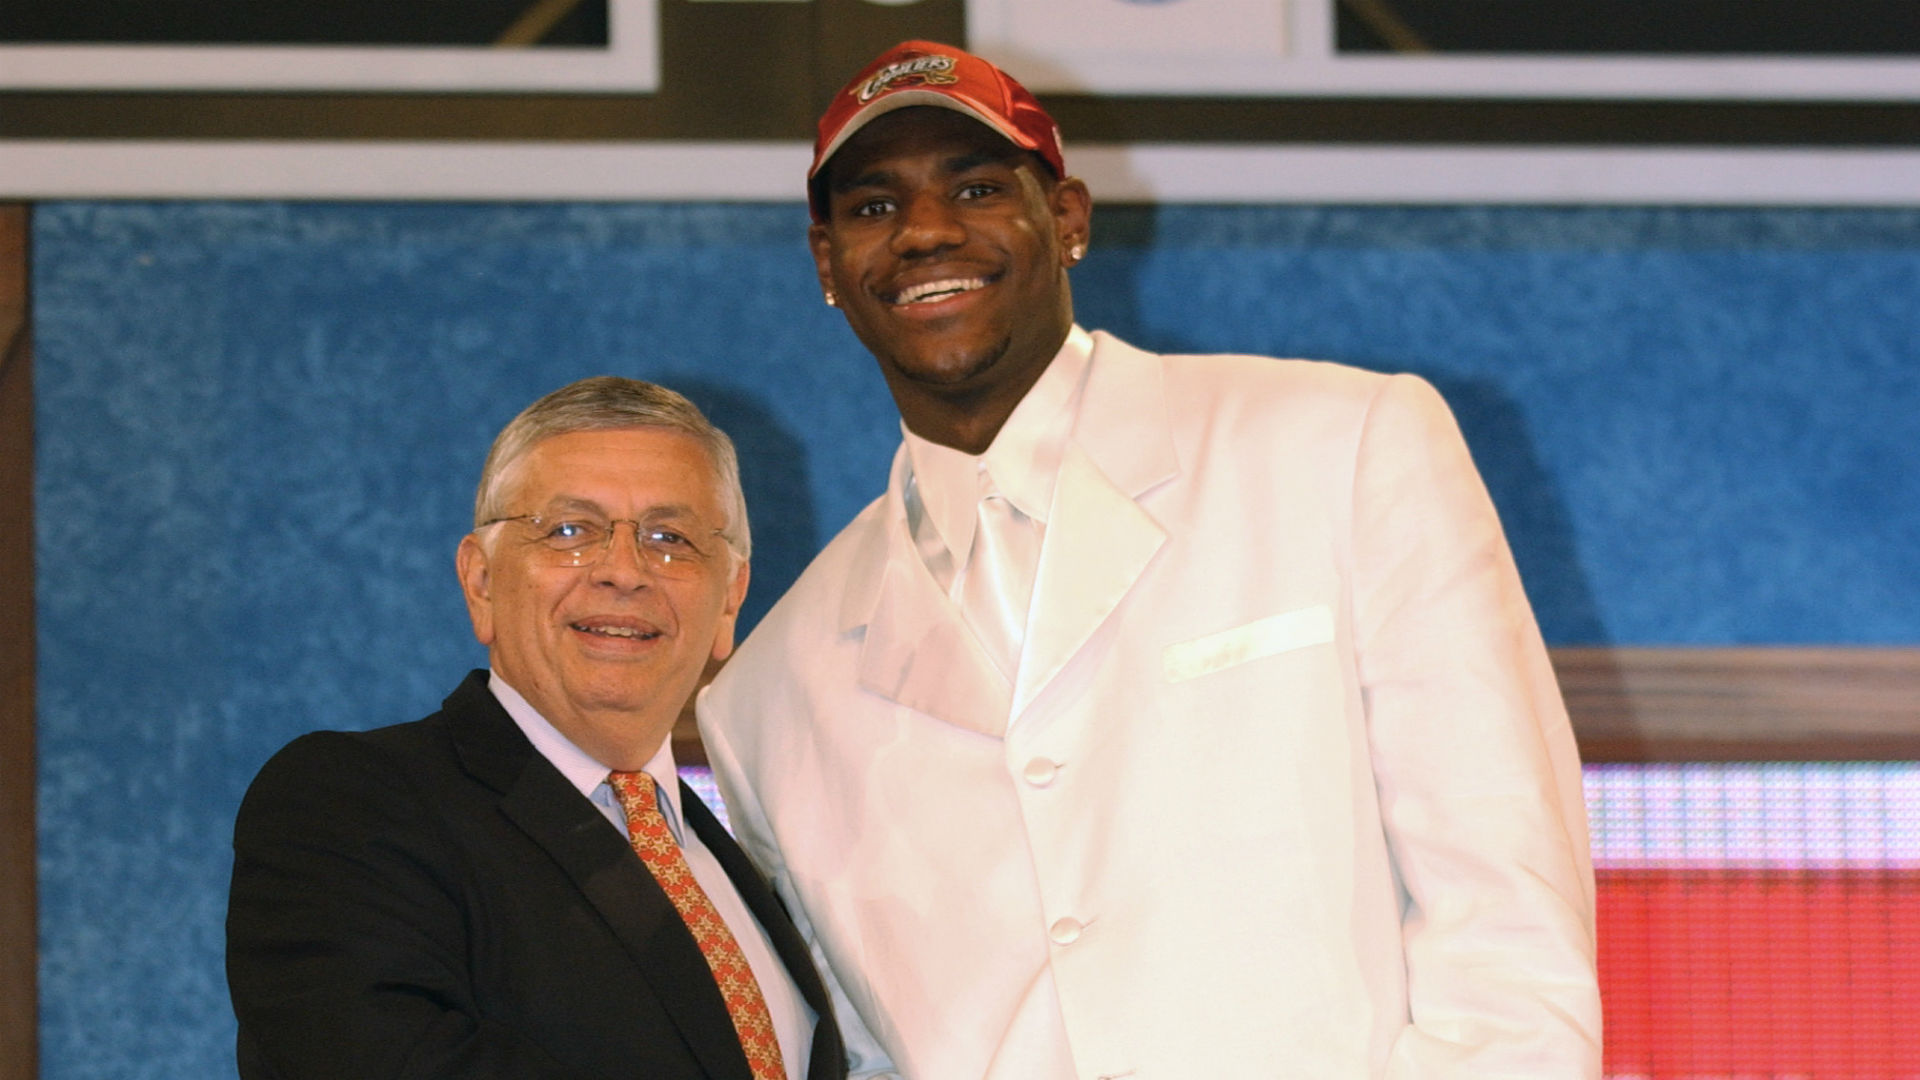 LeBron James poses with the late NBA commissioner David Stern after being drafted No. 1 overall in 2003.